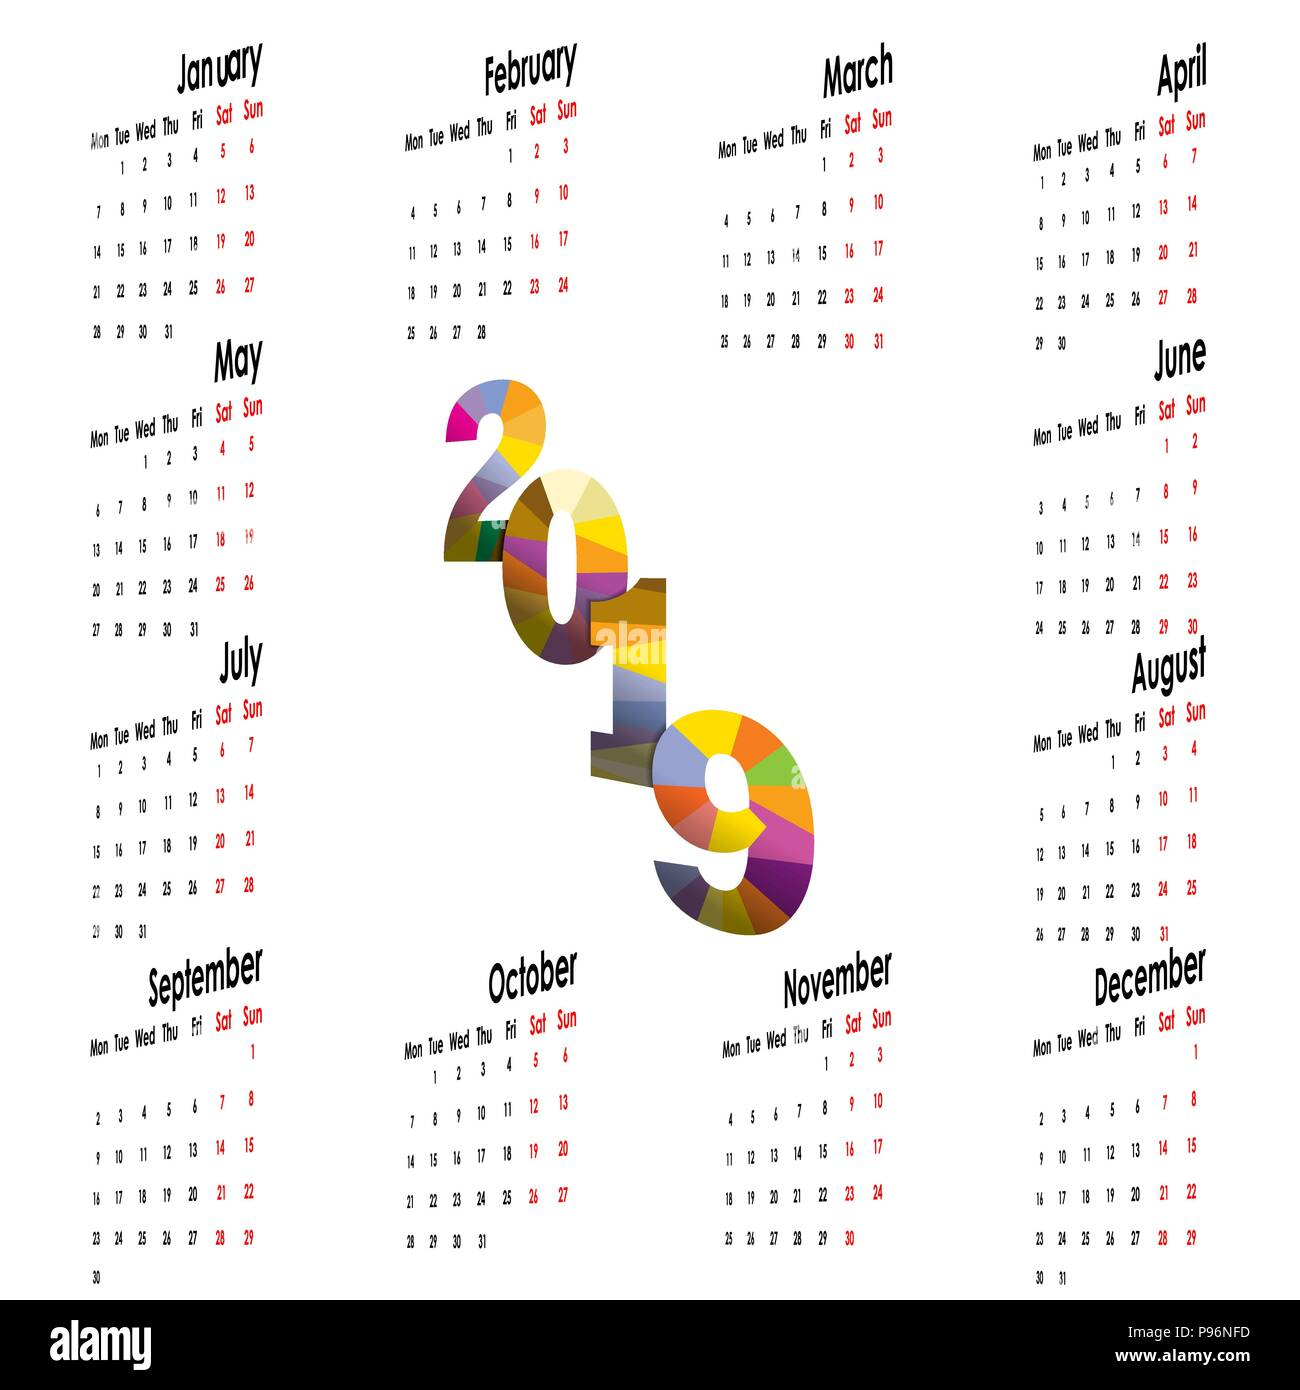 2019 calendar templatestarts mondayyearly calendar vector design stationery templatevector illustration